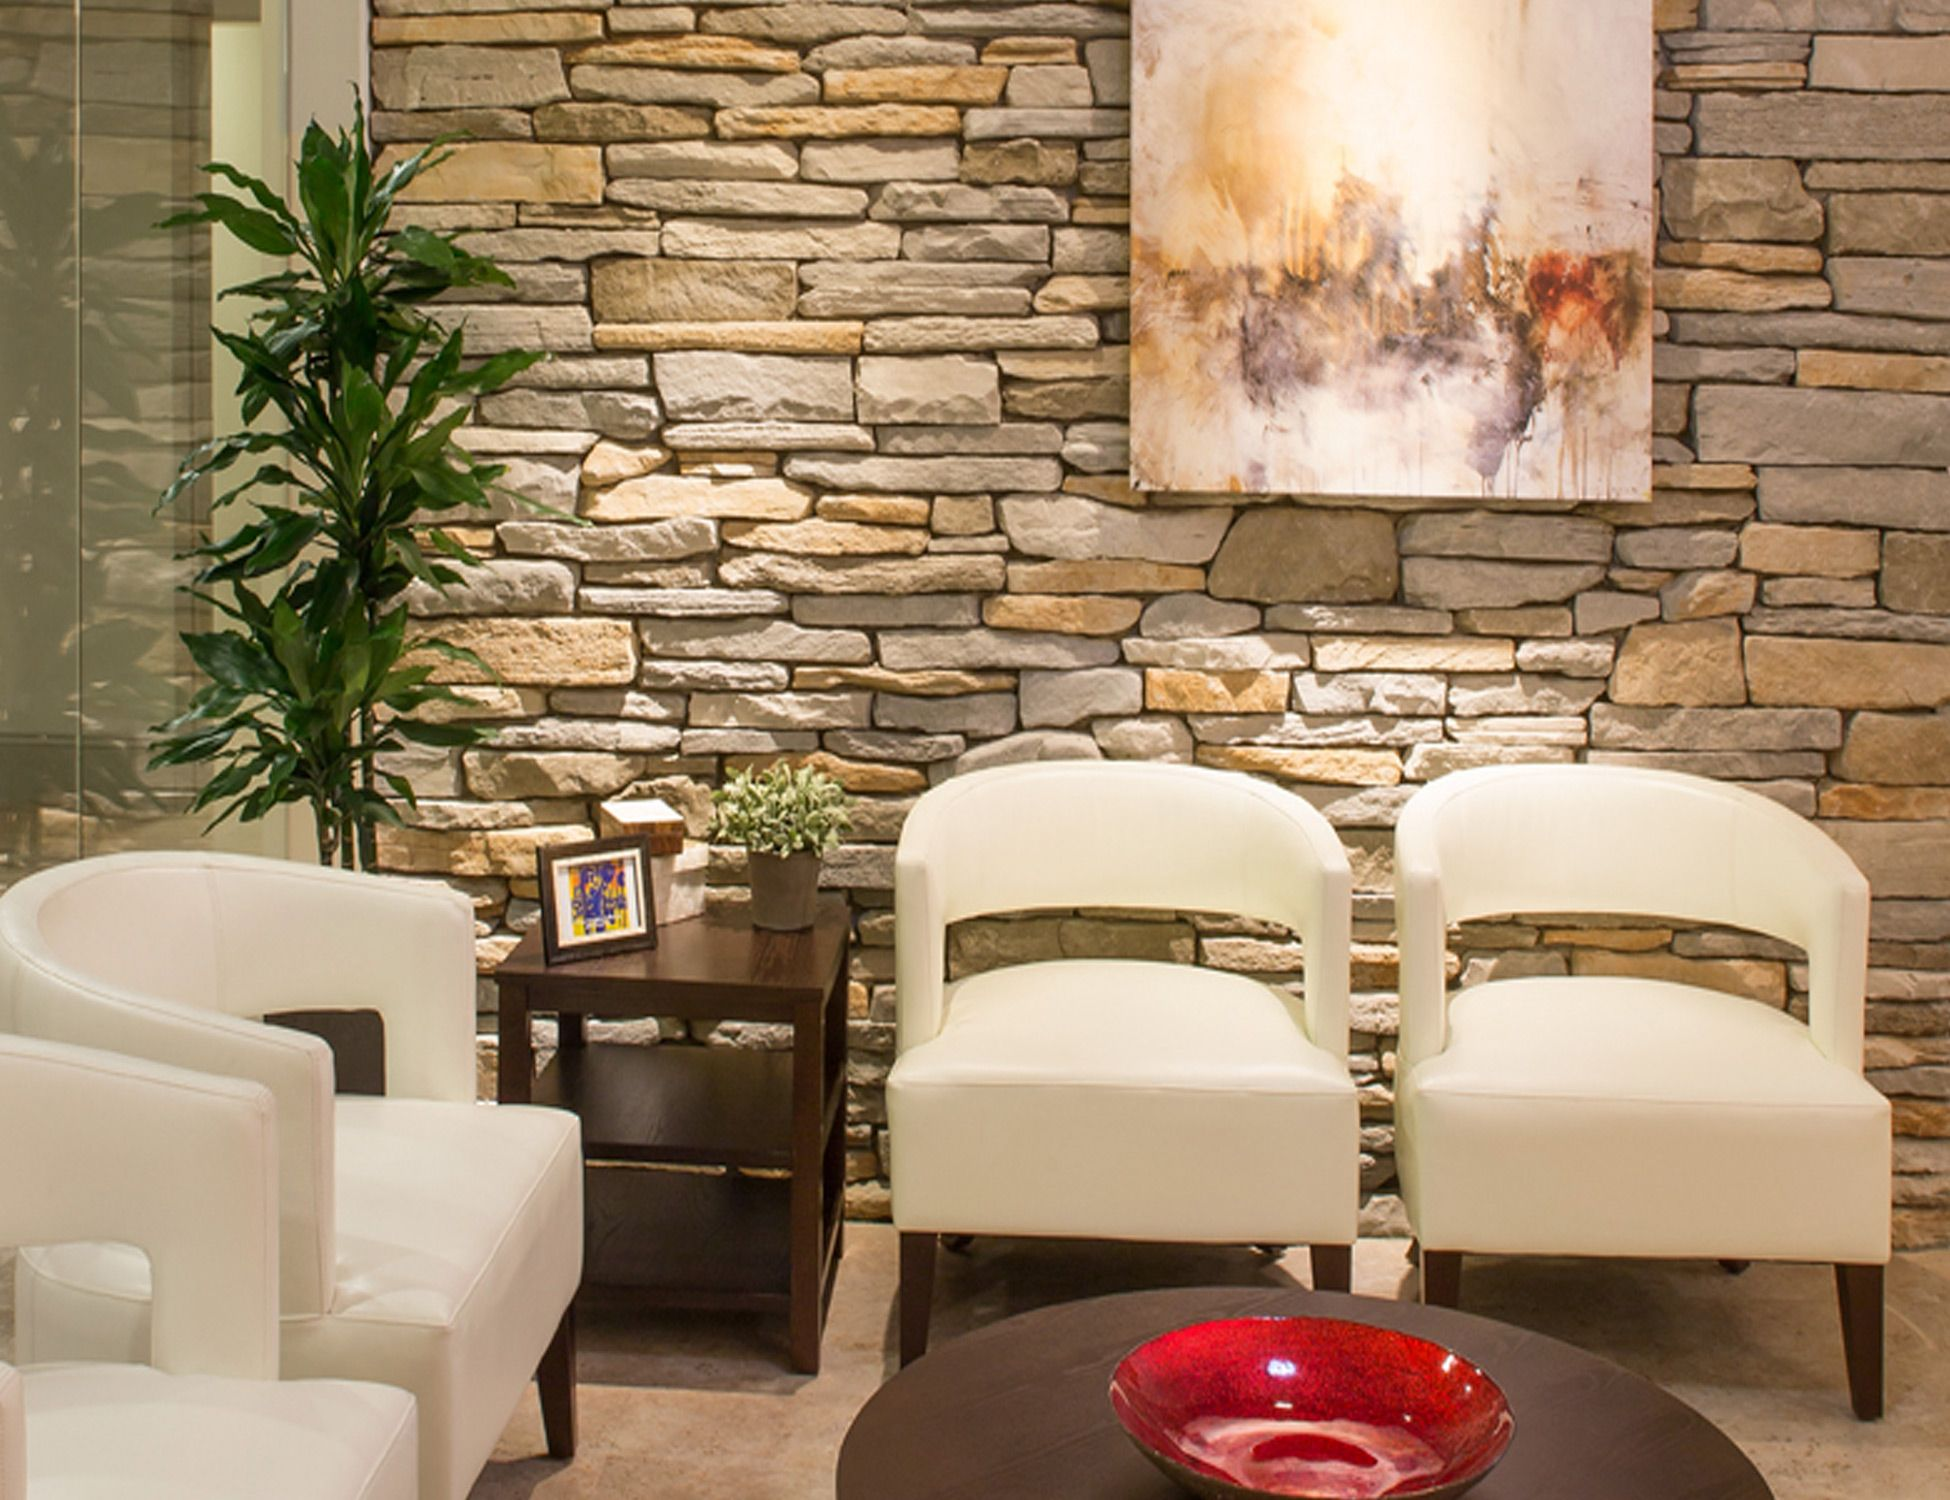 Chiropractic Office Design Office Design For Chiropractors Chiropractic Office Design Waiting Room Design Therapy Office Decor